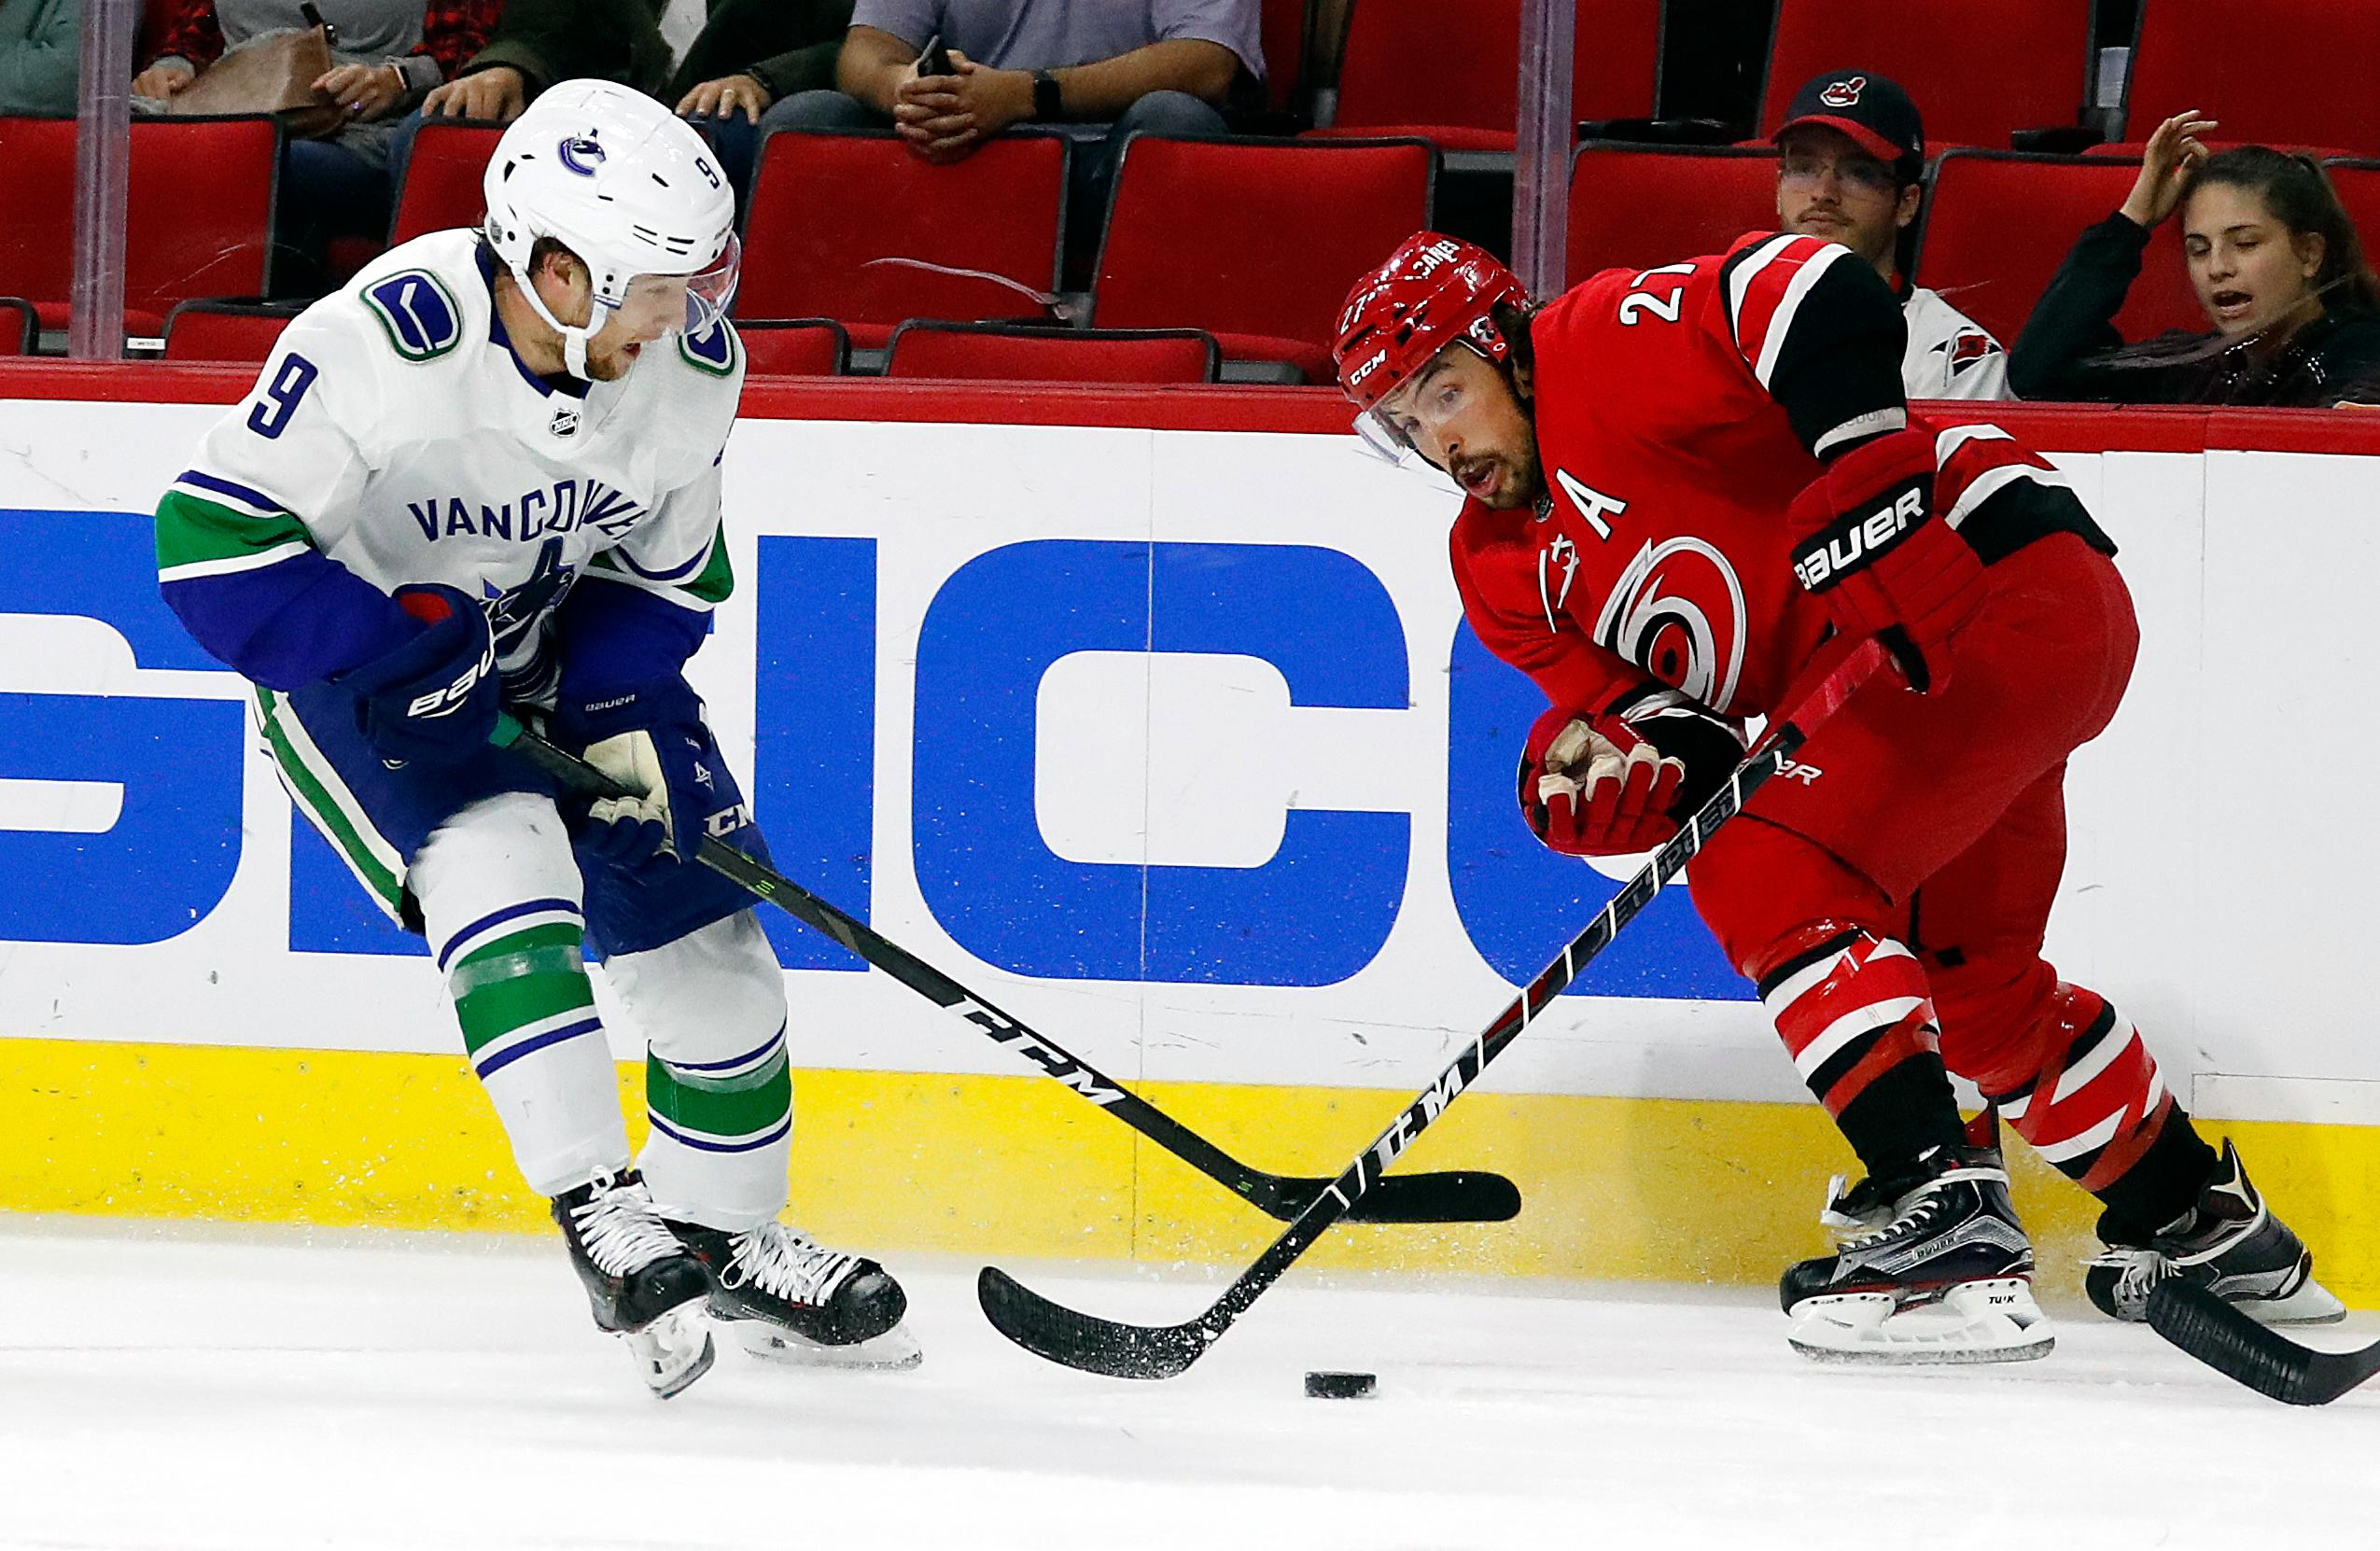 Carolina Hurricanes' Justin Faulk (27) battles with Vancouver Canucks' Brendan Leipsic (9) during the first period of an NHL hockey game, Tuesday, Oct. 9, 2018, in Raleigh, N.C. (AP Photo/Karl B DeBlaker)